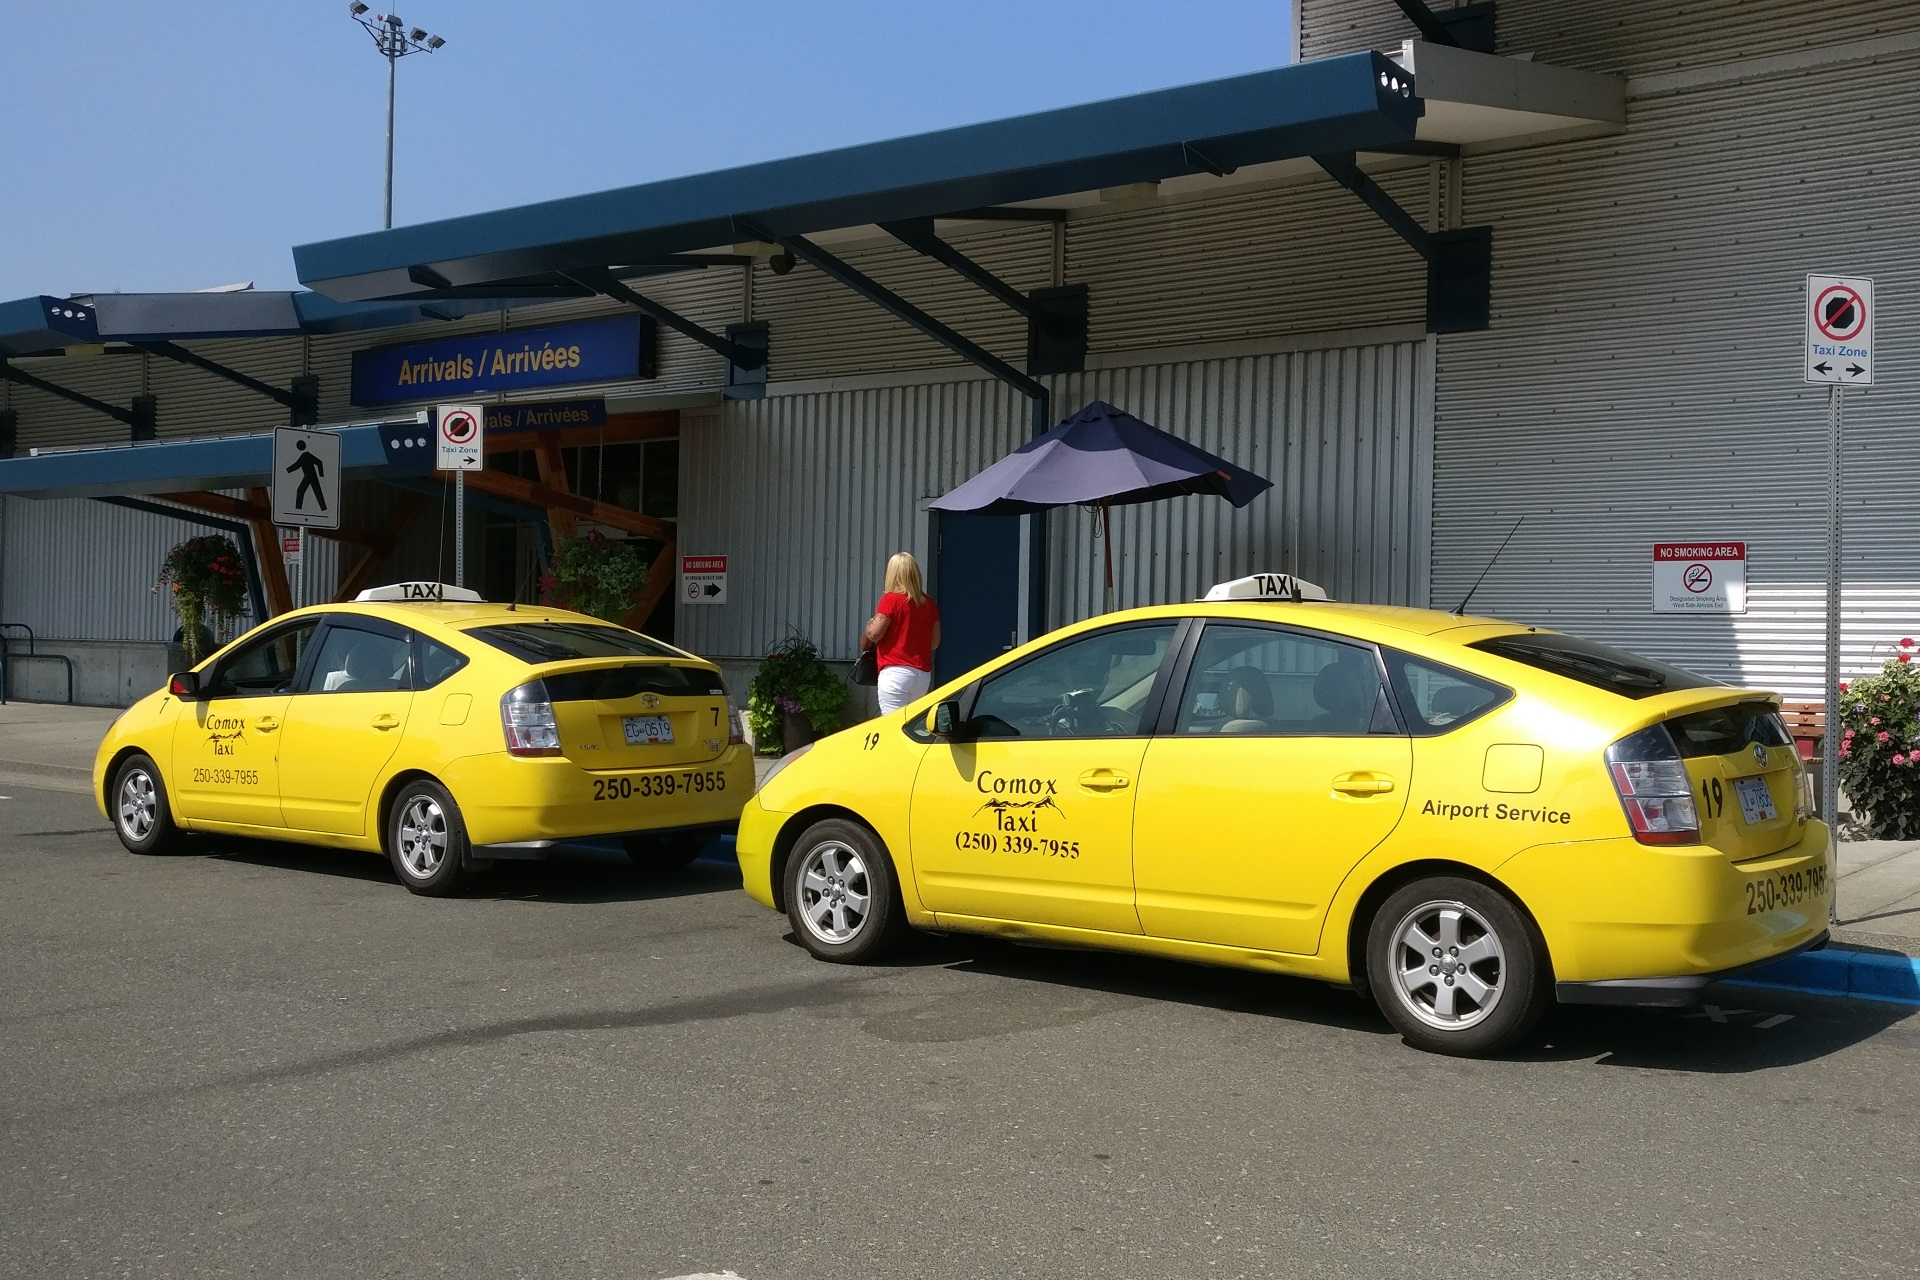 Taxis at airport